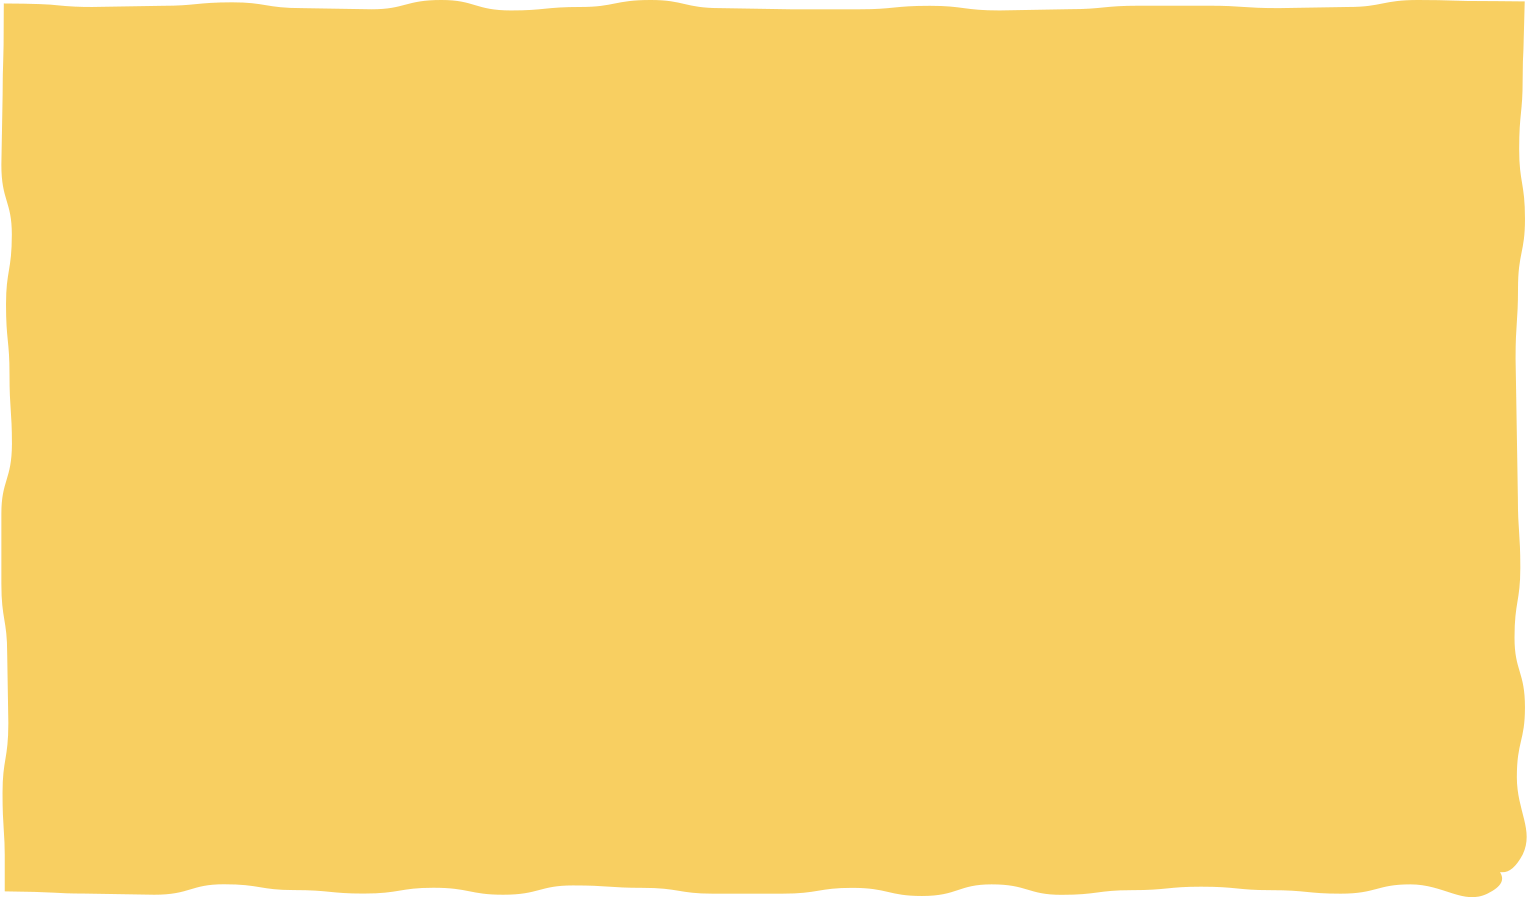 style rectangle yellow Vector images in PNG and SVG | Icons8 Illustrations